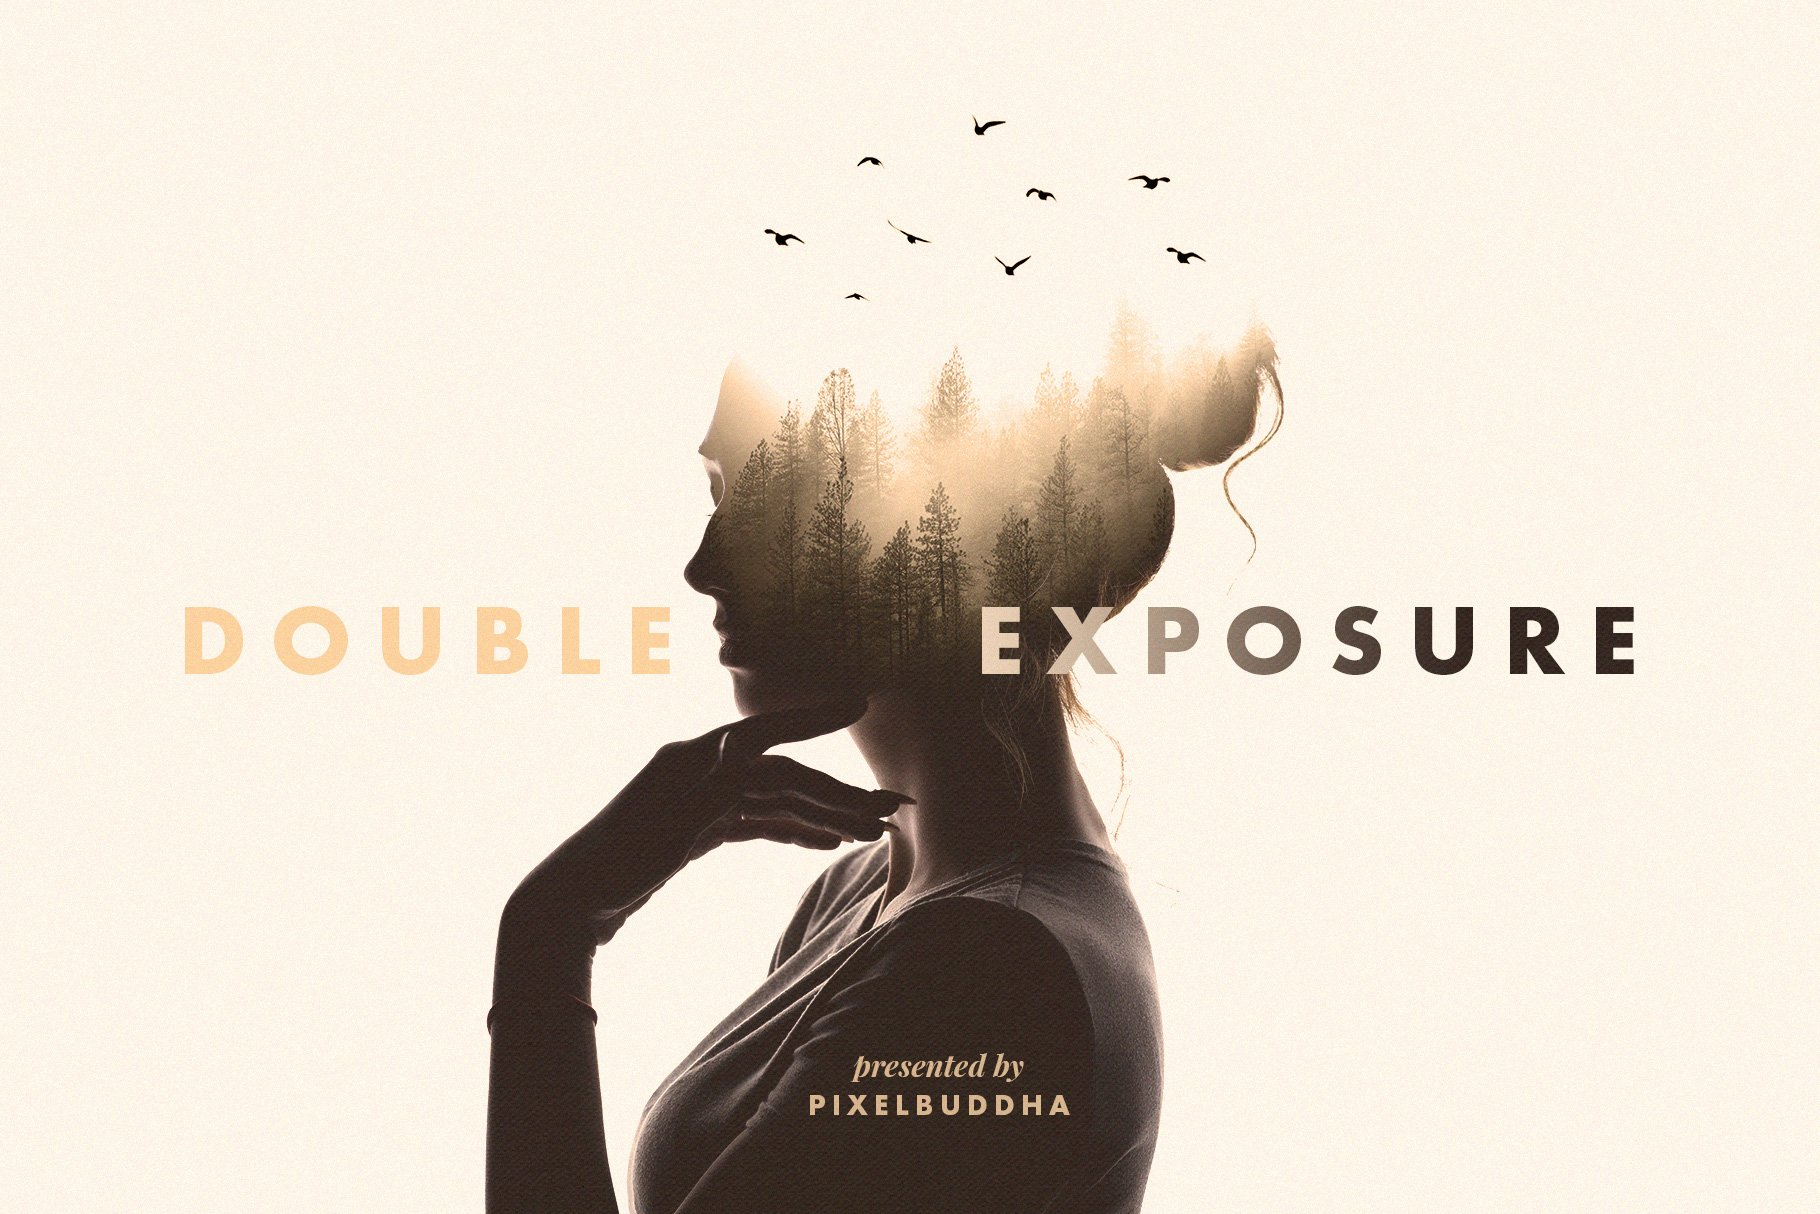 Double Exposure Photoshop Effect by Pixelbuddha